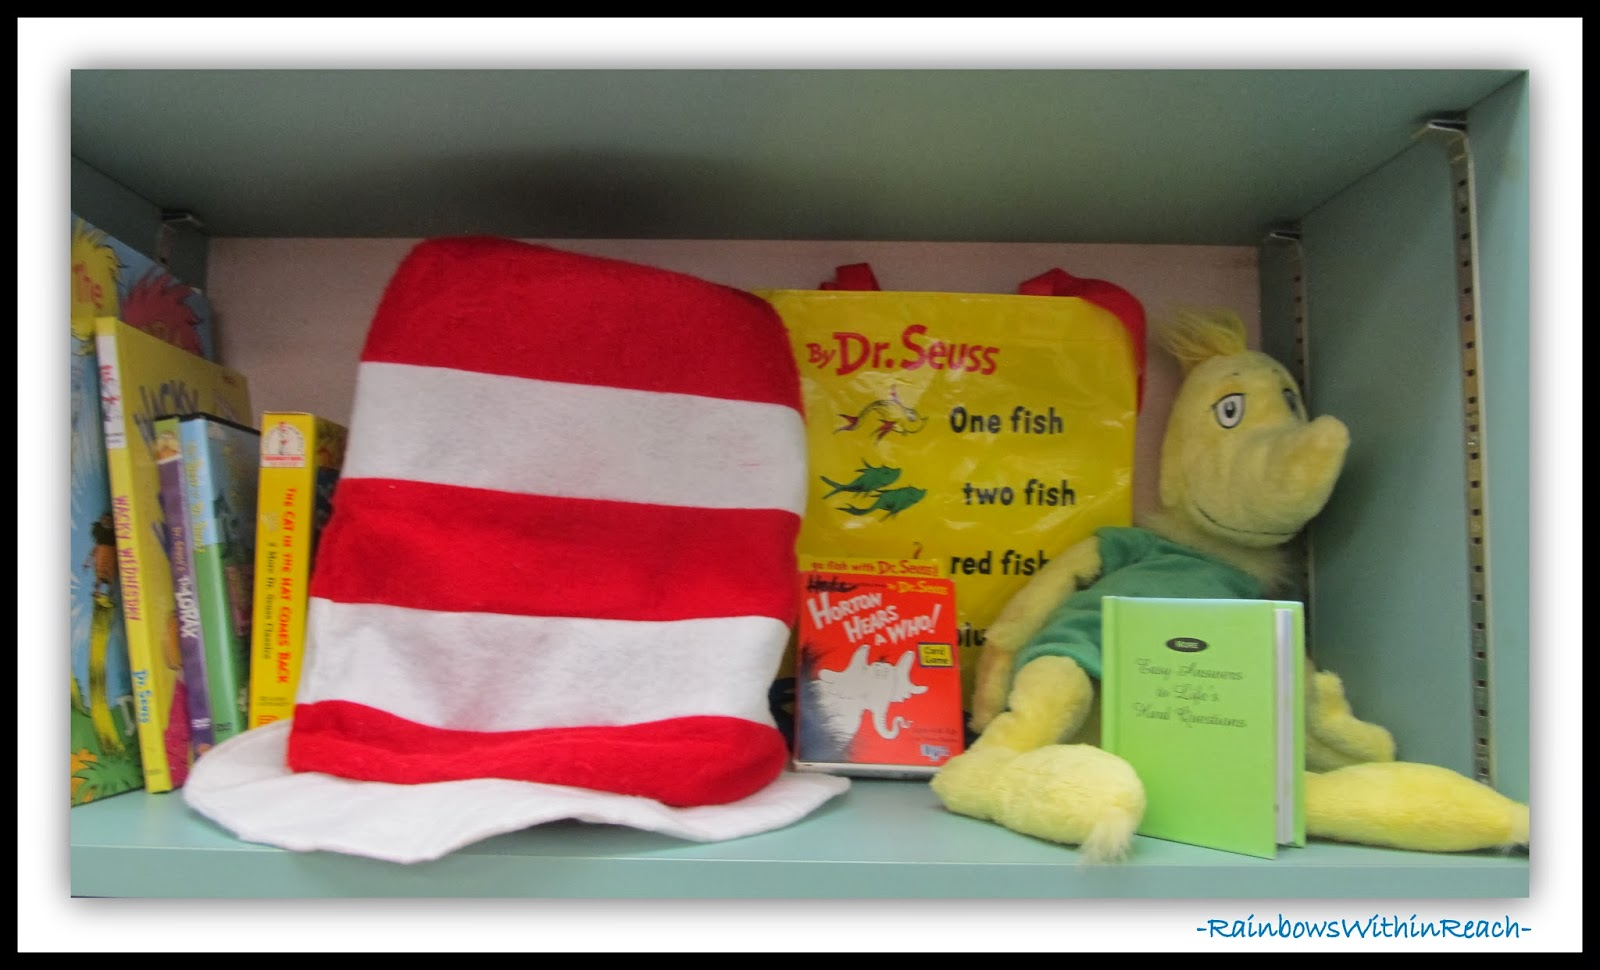 Seuss Display in the Classroom Library via RainbowsWithinReach